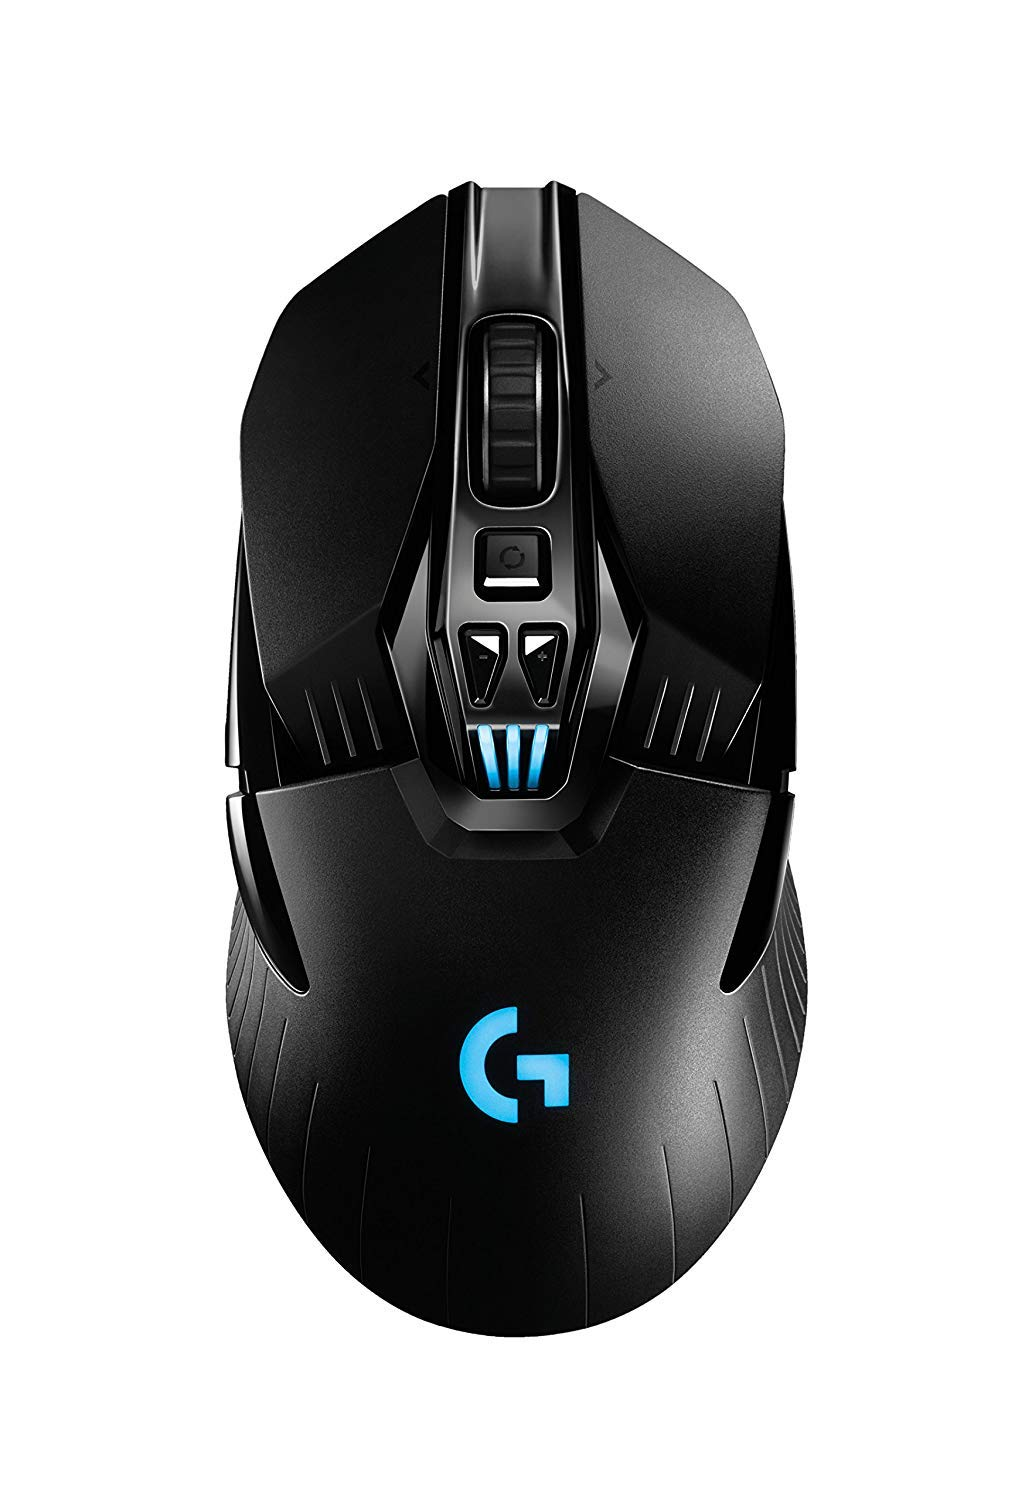 Logitech G903 Lightspeed Wireless Gaming Mouse W/Hero 16K Sensor, 140+ Hour with Rechargeable Battery and Lightsync RGB. PowerPlay Compatible, Ambidextrous, 107G+10G Optional, 16, 000 DPI by Logitech G